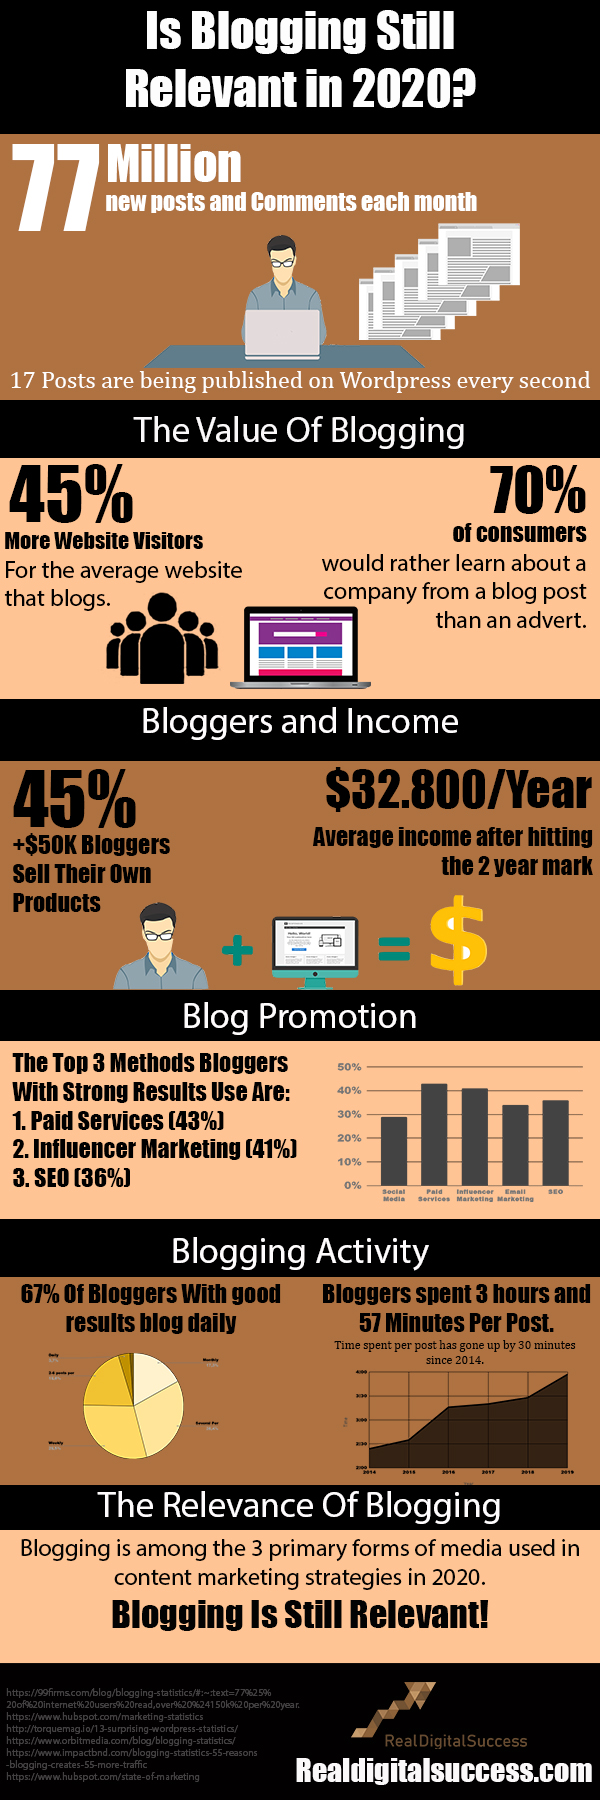 Is Blogging Still Relevant Infographic